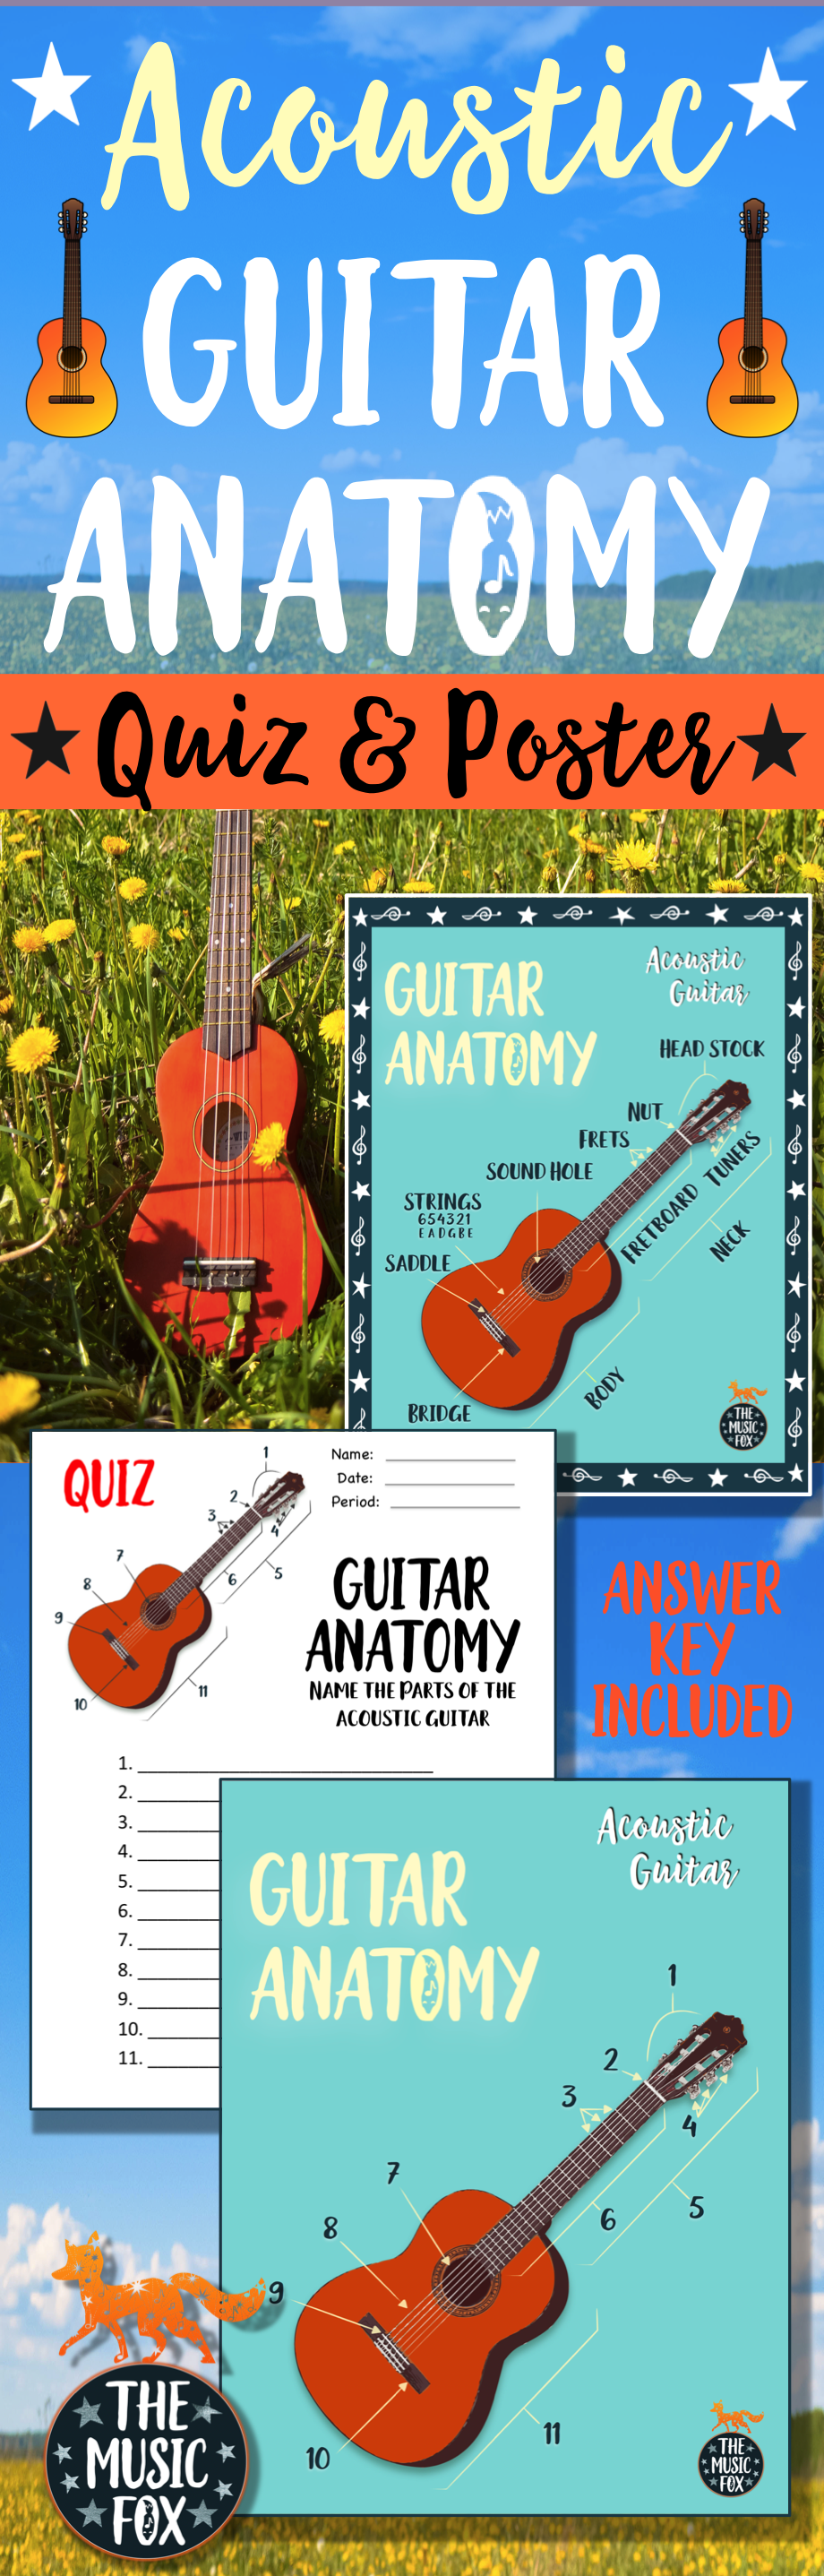 acoustic guitar anatomy poster color b w grades 3 12 the music fox resources freebies. Black Bedroom Furniture Sets. Home Design Ideas